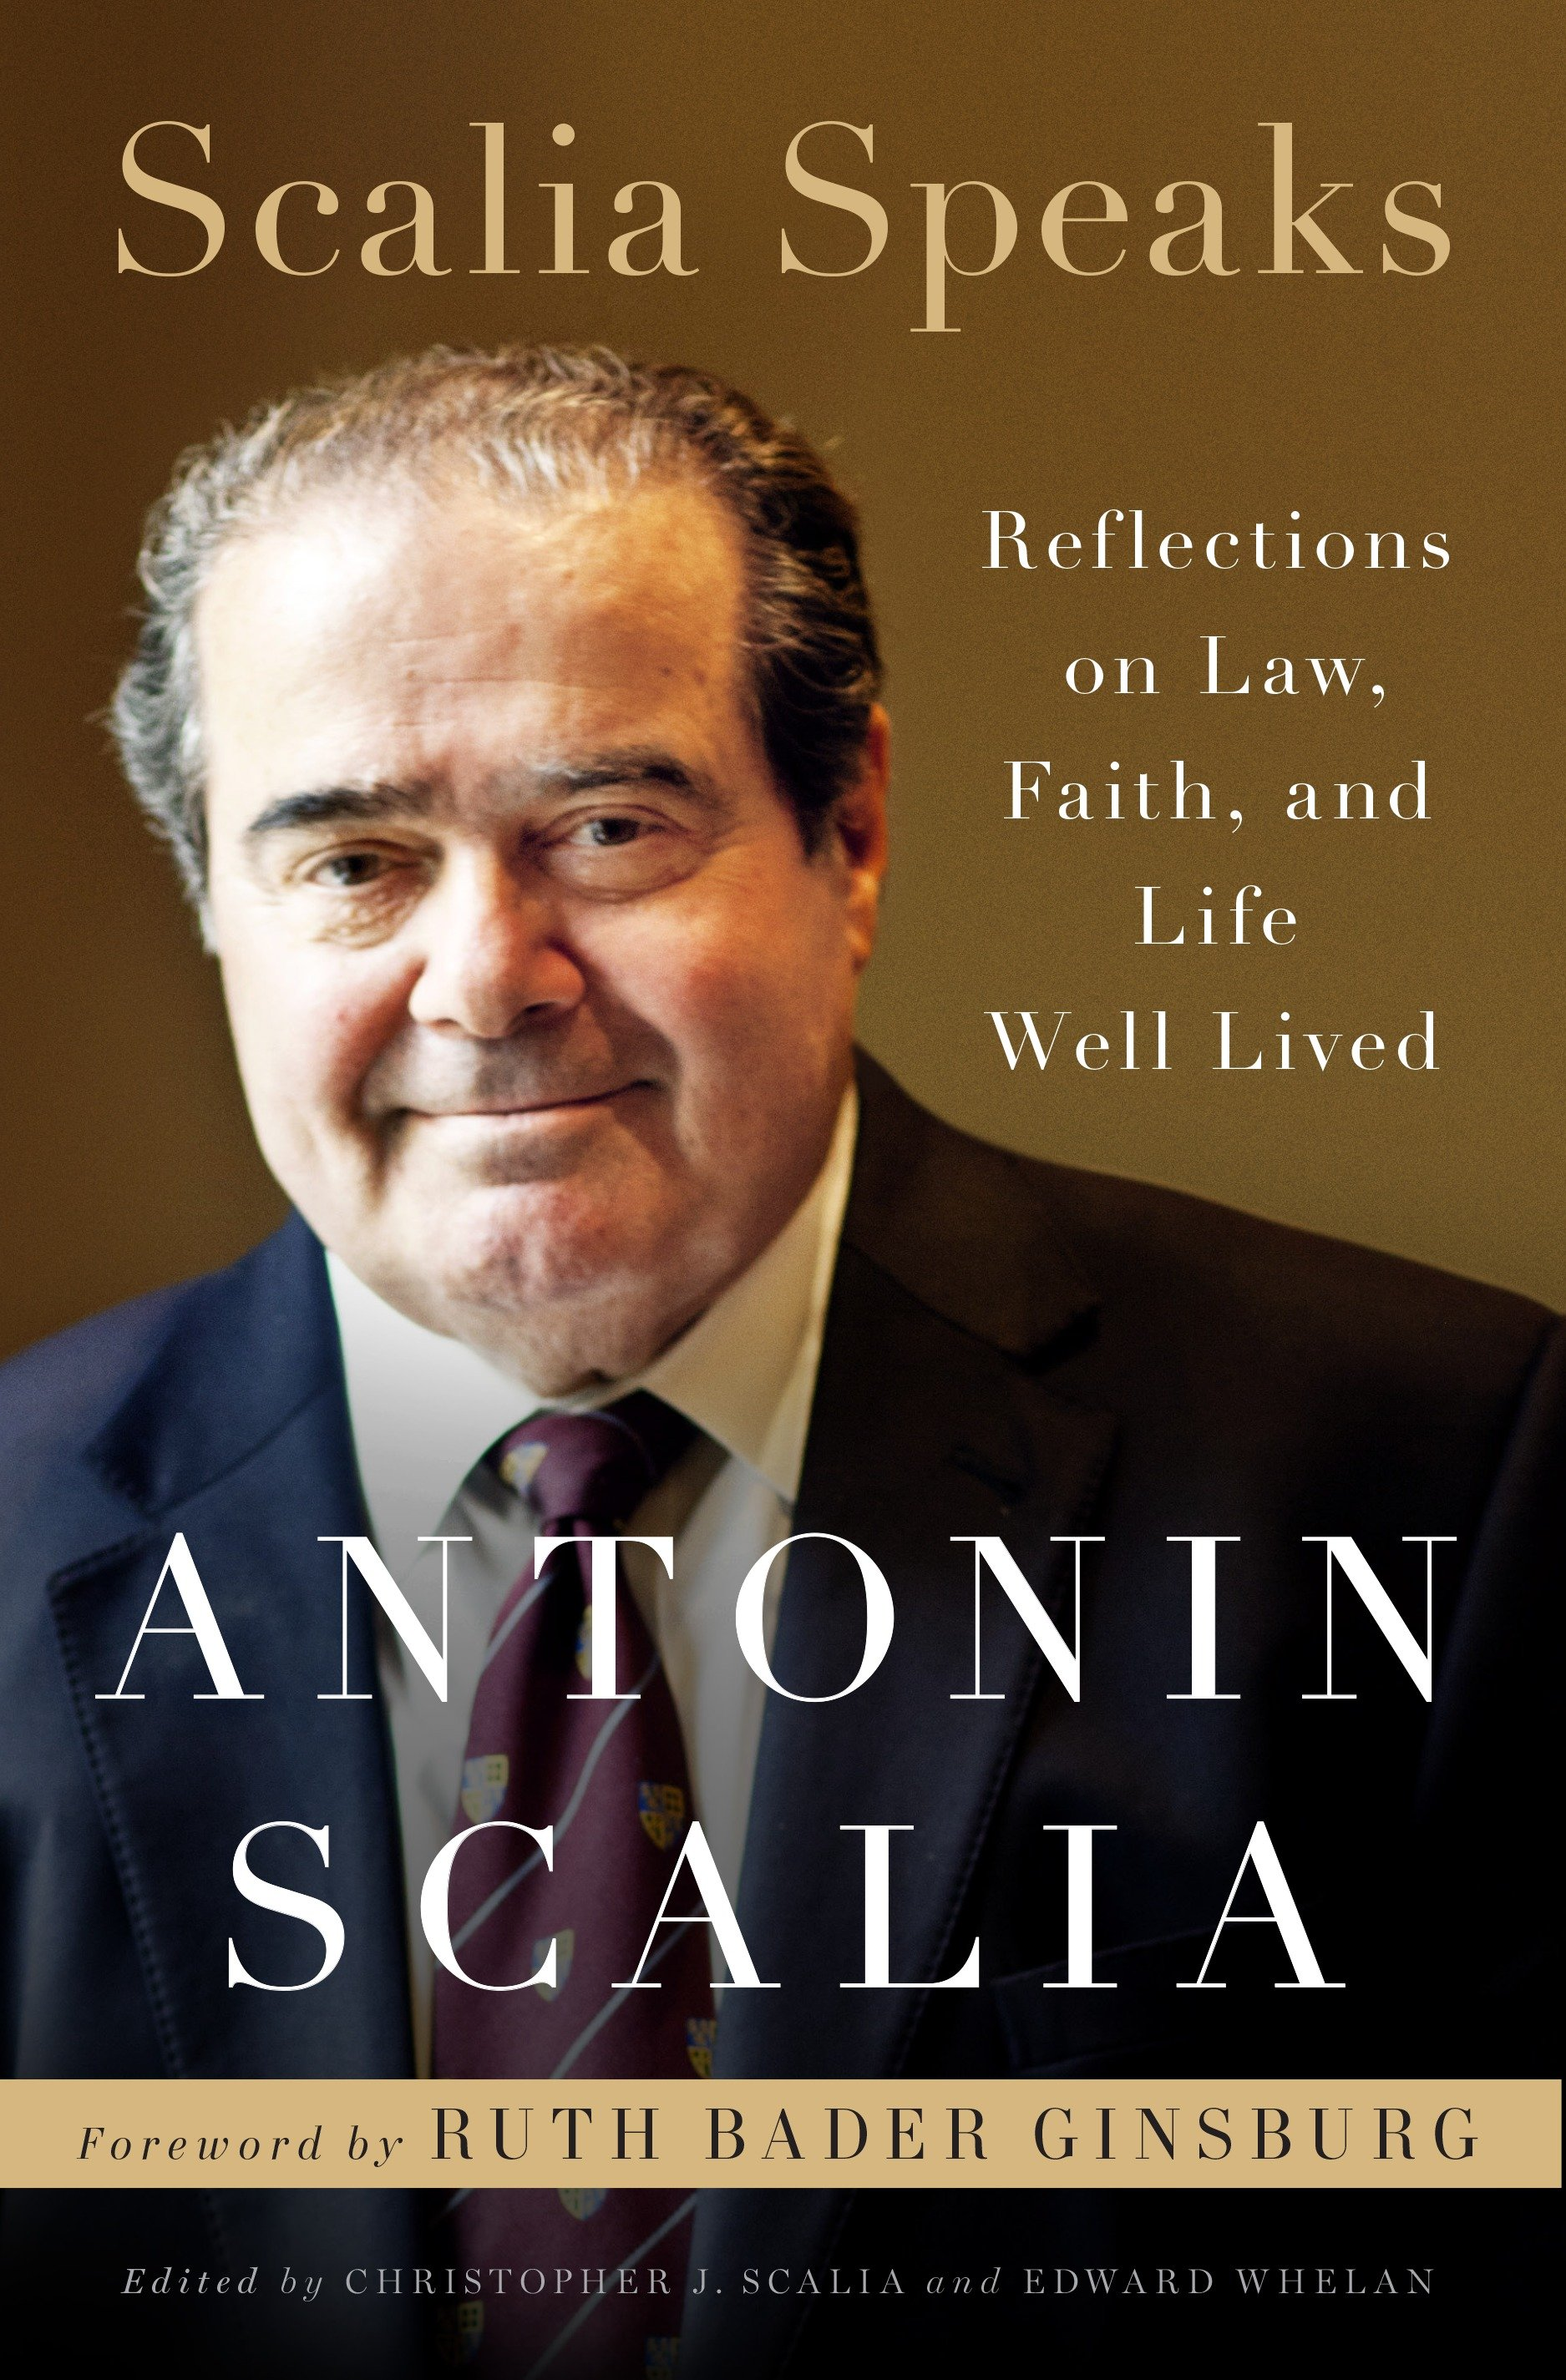 Scalia Speaks Reflections on Law, Faith, and Life Well Lived